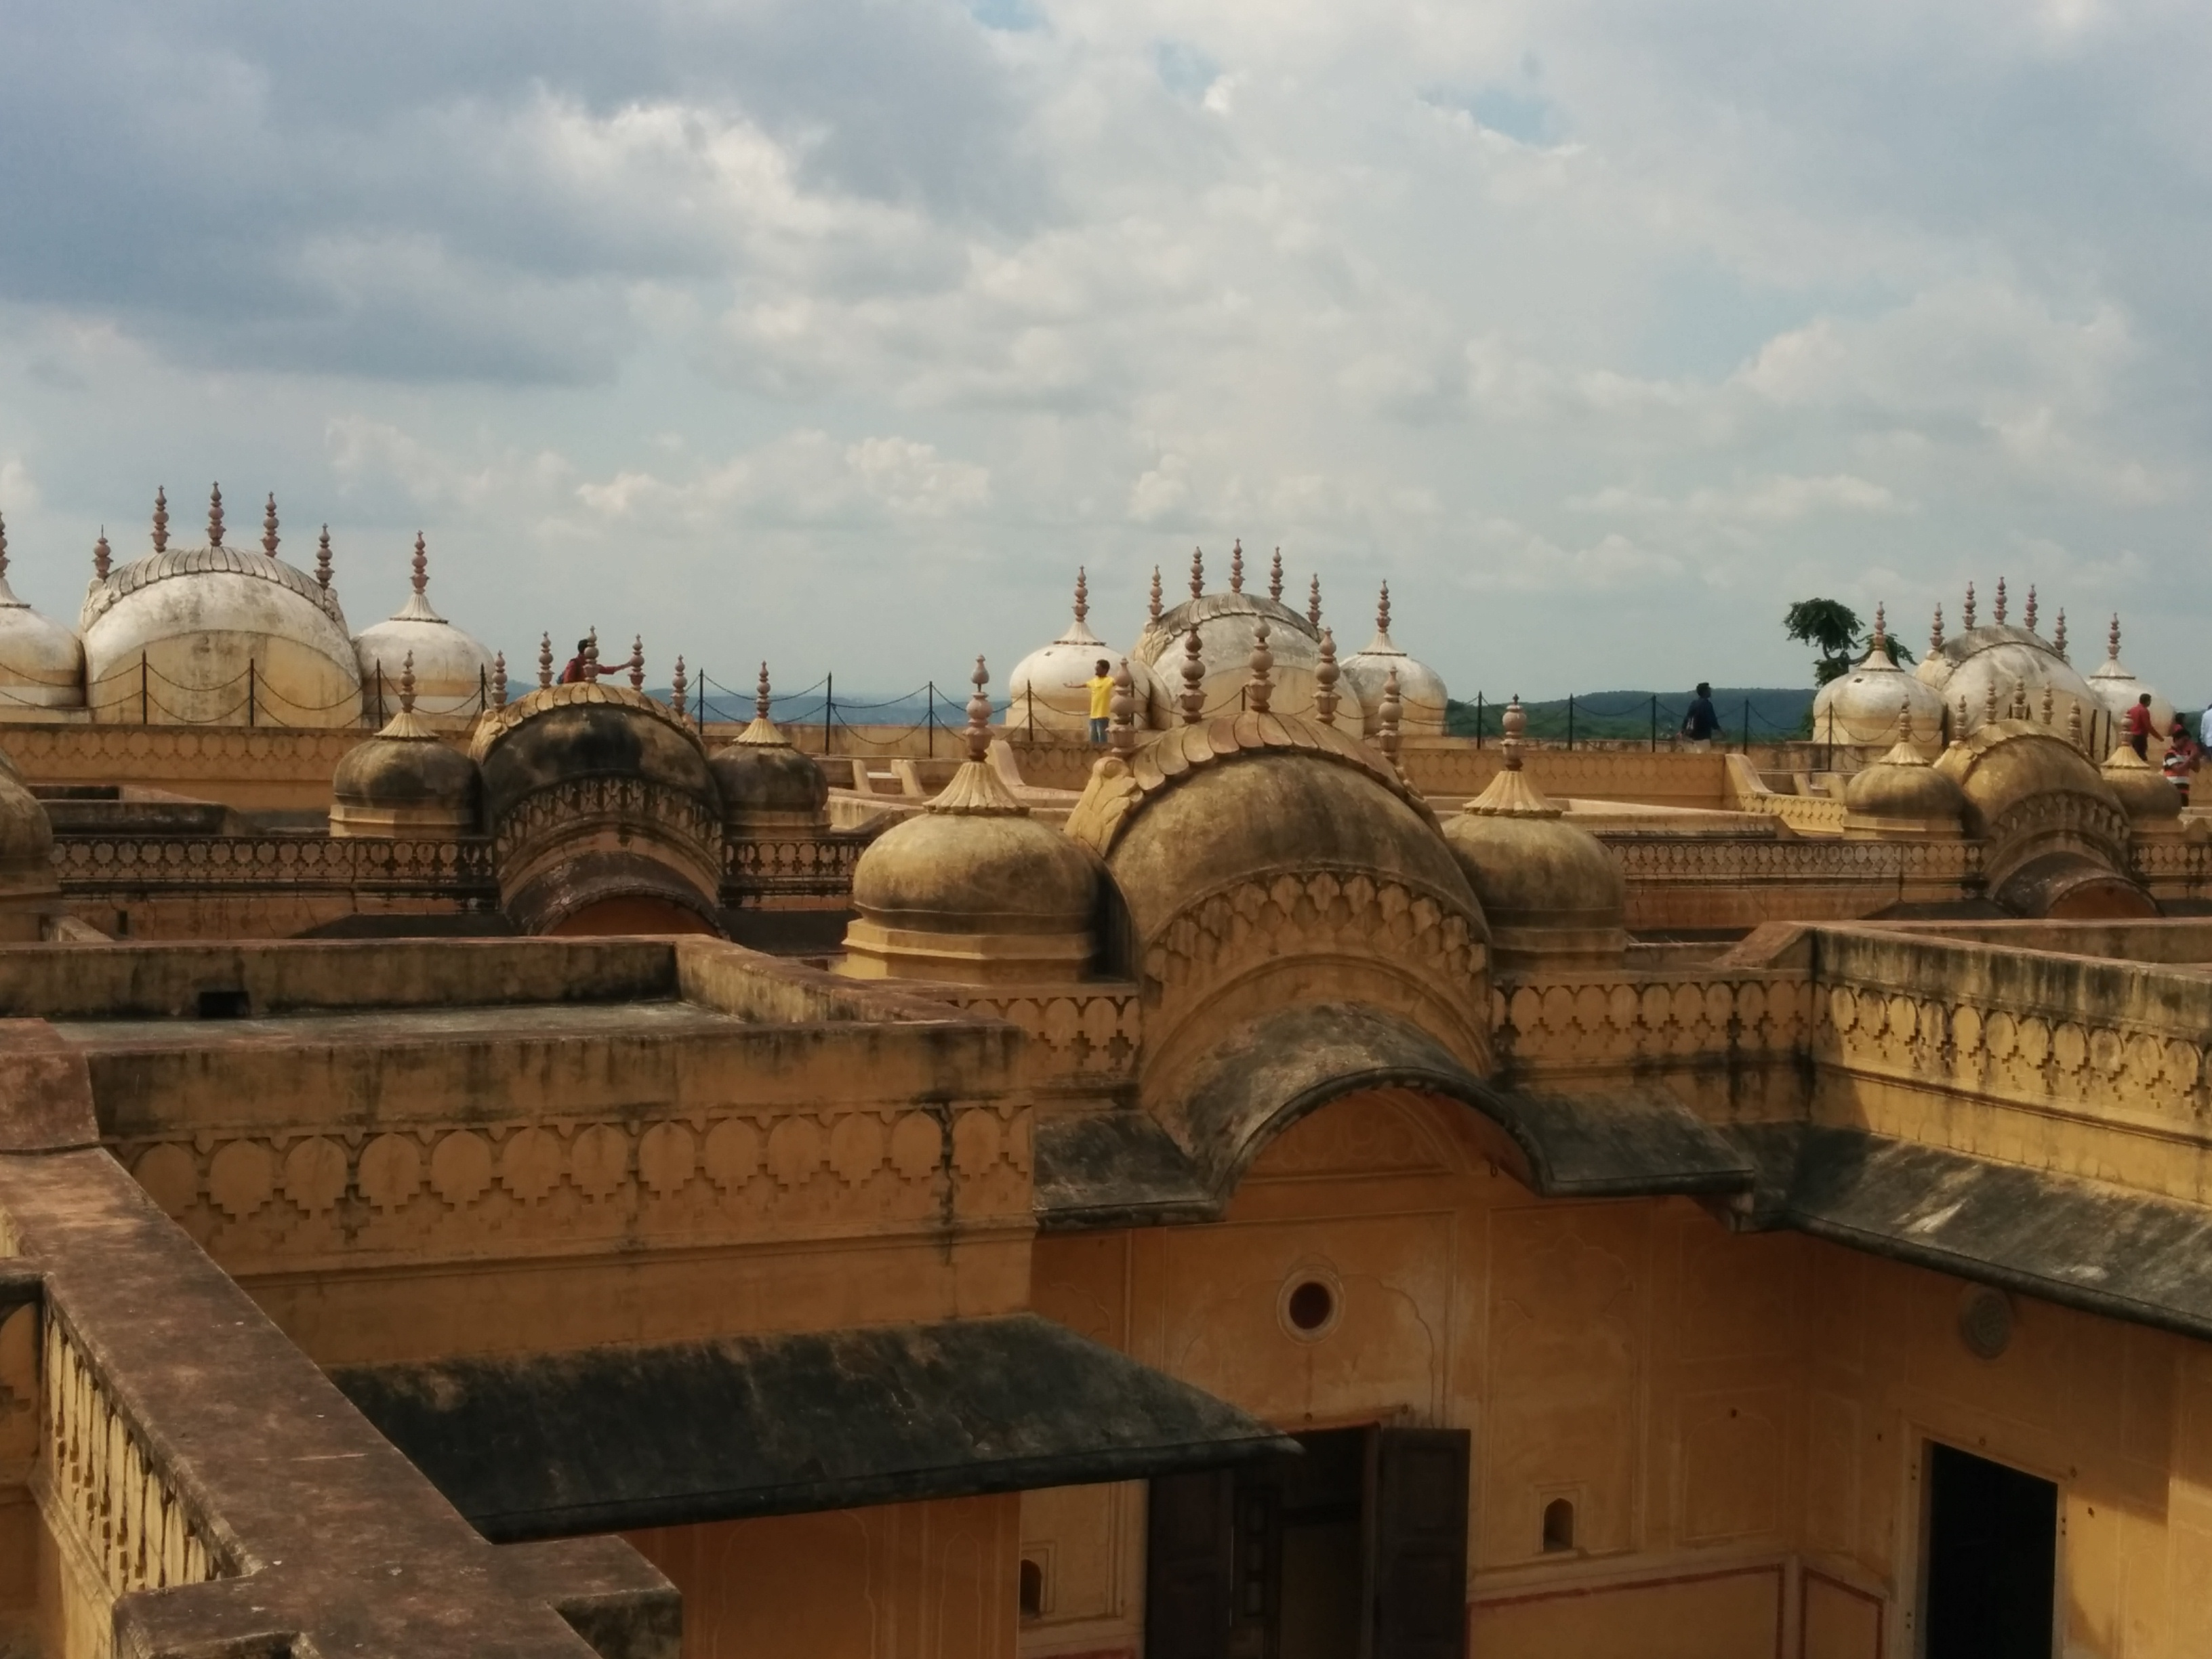 Nahargarh Fort, Jaipur Average in its commercial setting, but the onion domes from its Mughal alliance heyday are still standing stong